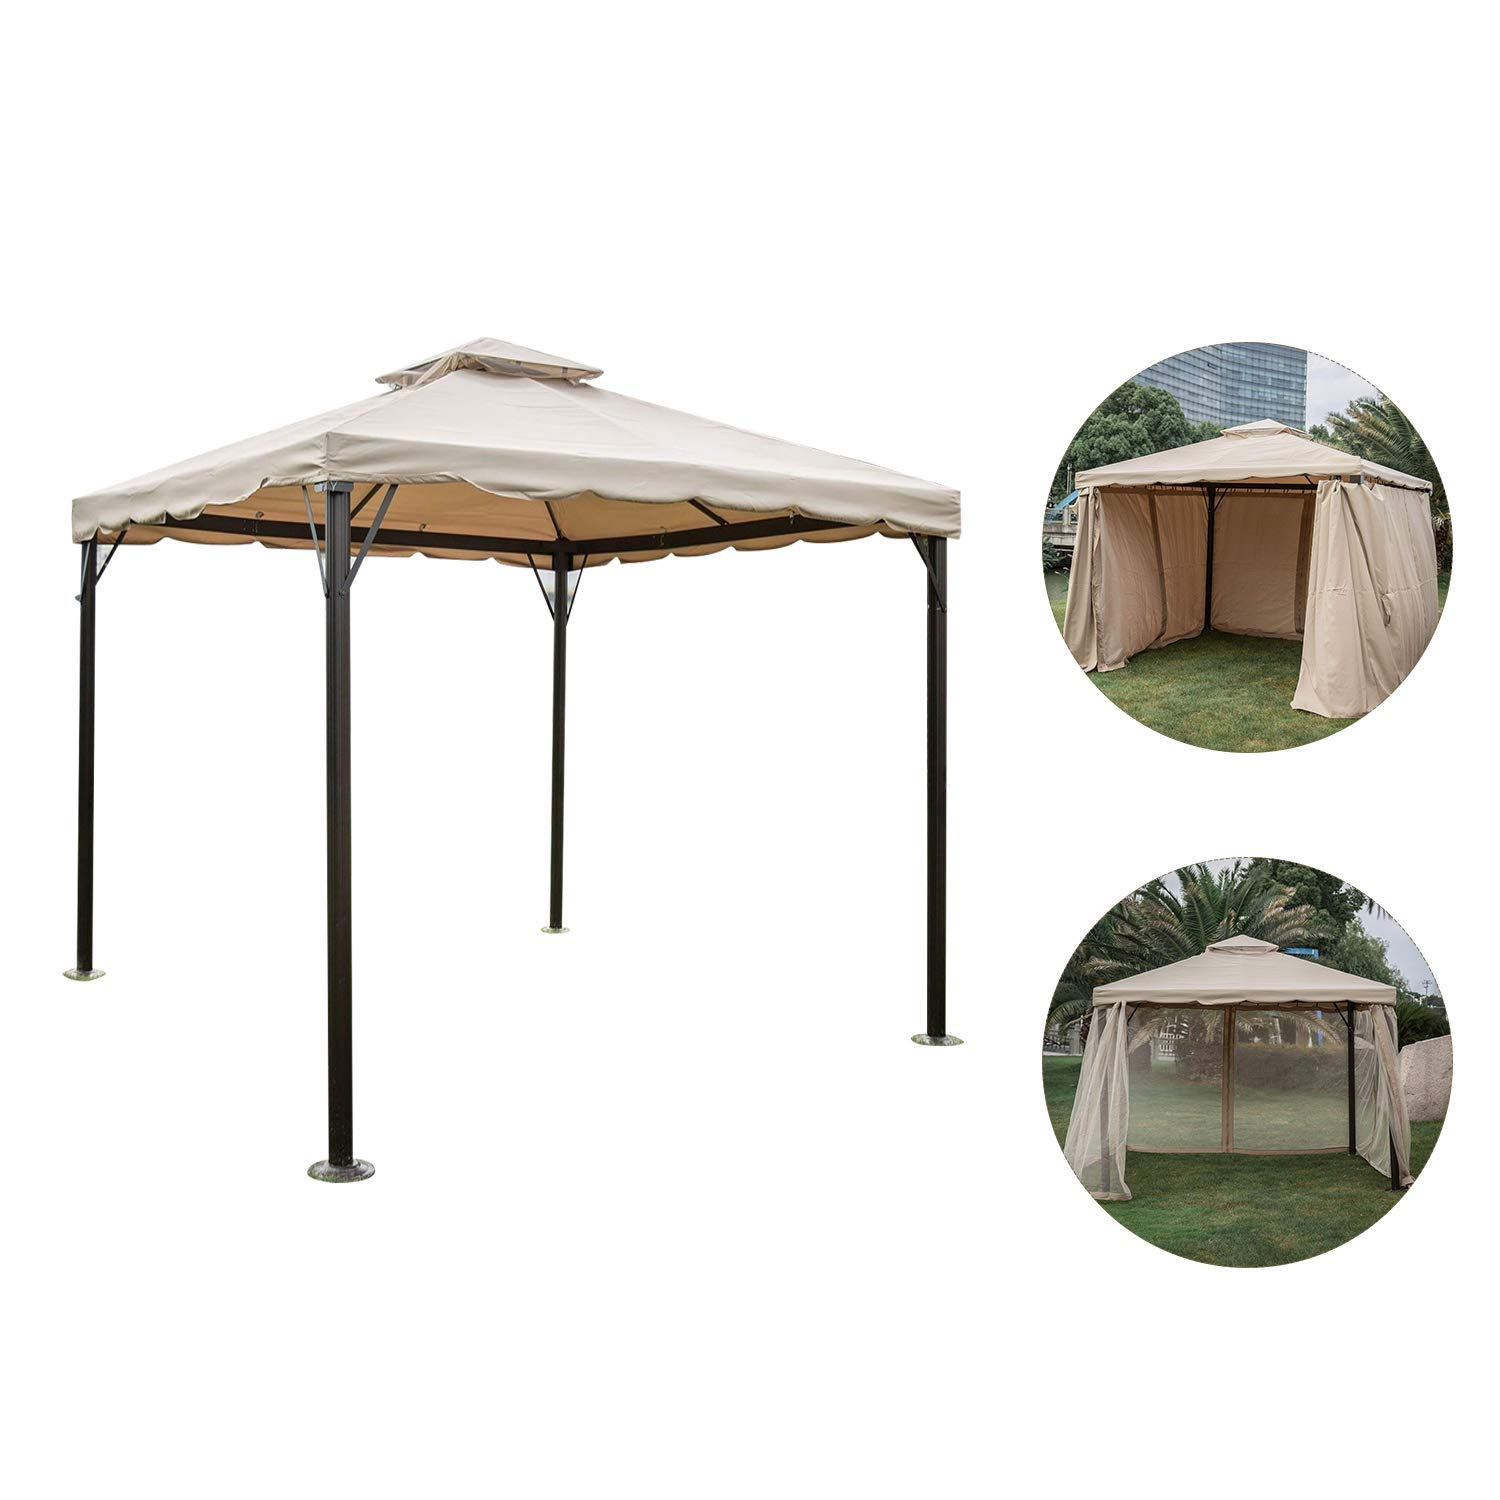 Kinbor 10' x 10' Outdoor Gazebo with Vented Mosquito Netting 2-Tiered Top Canopy with Privacy Sidewalls, Kanki